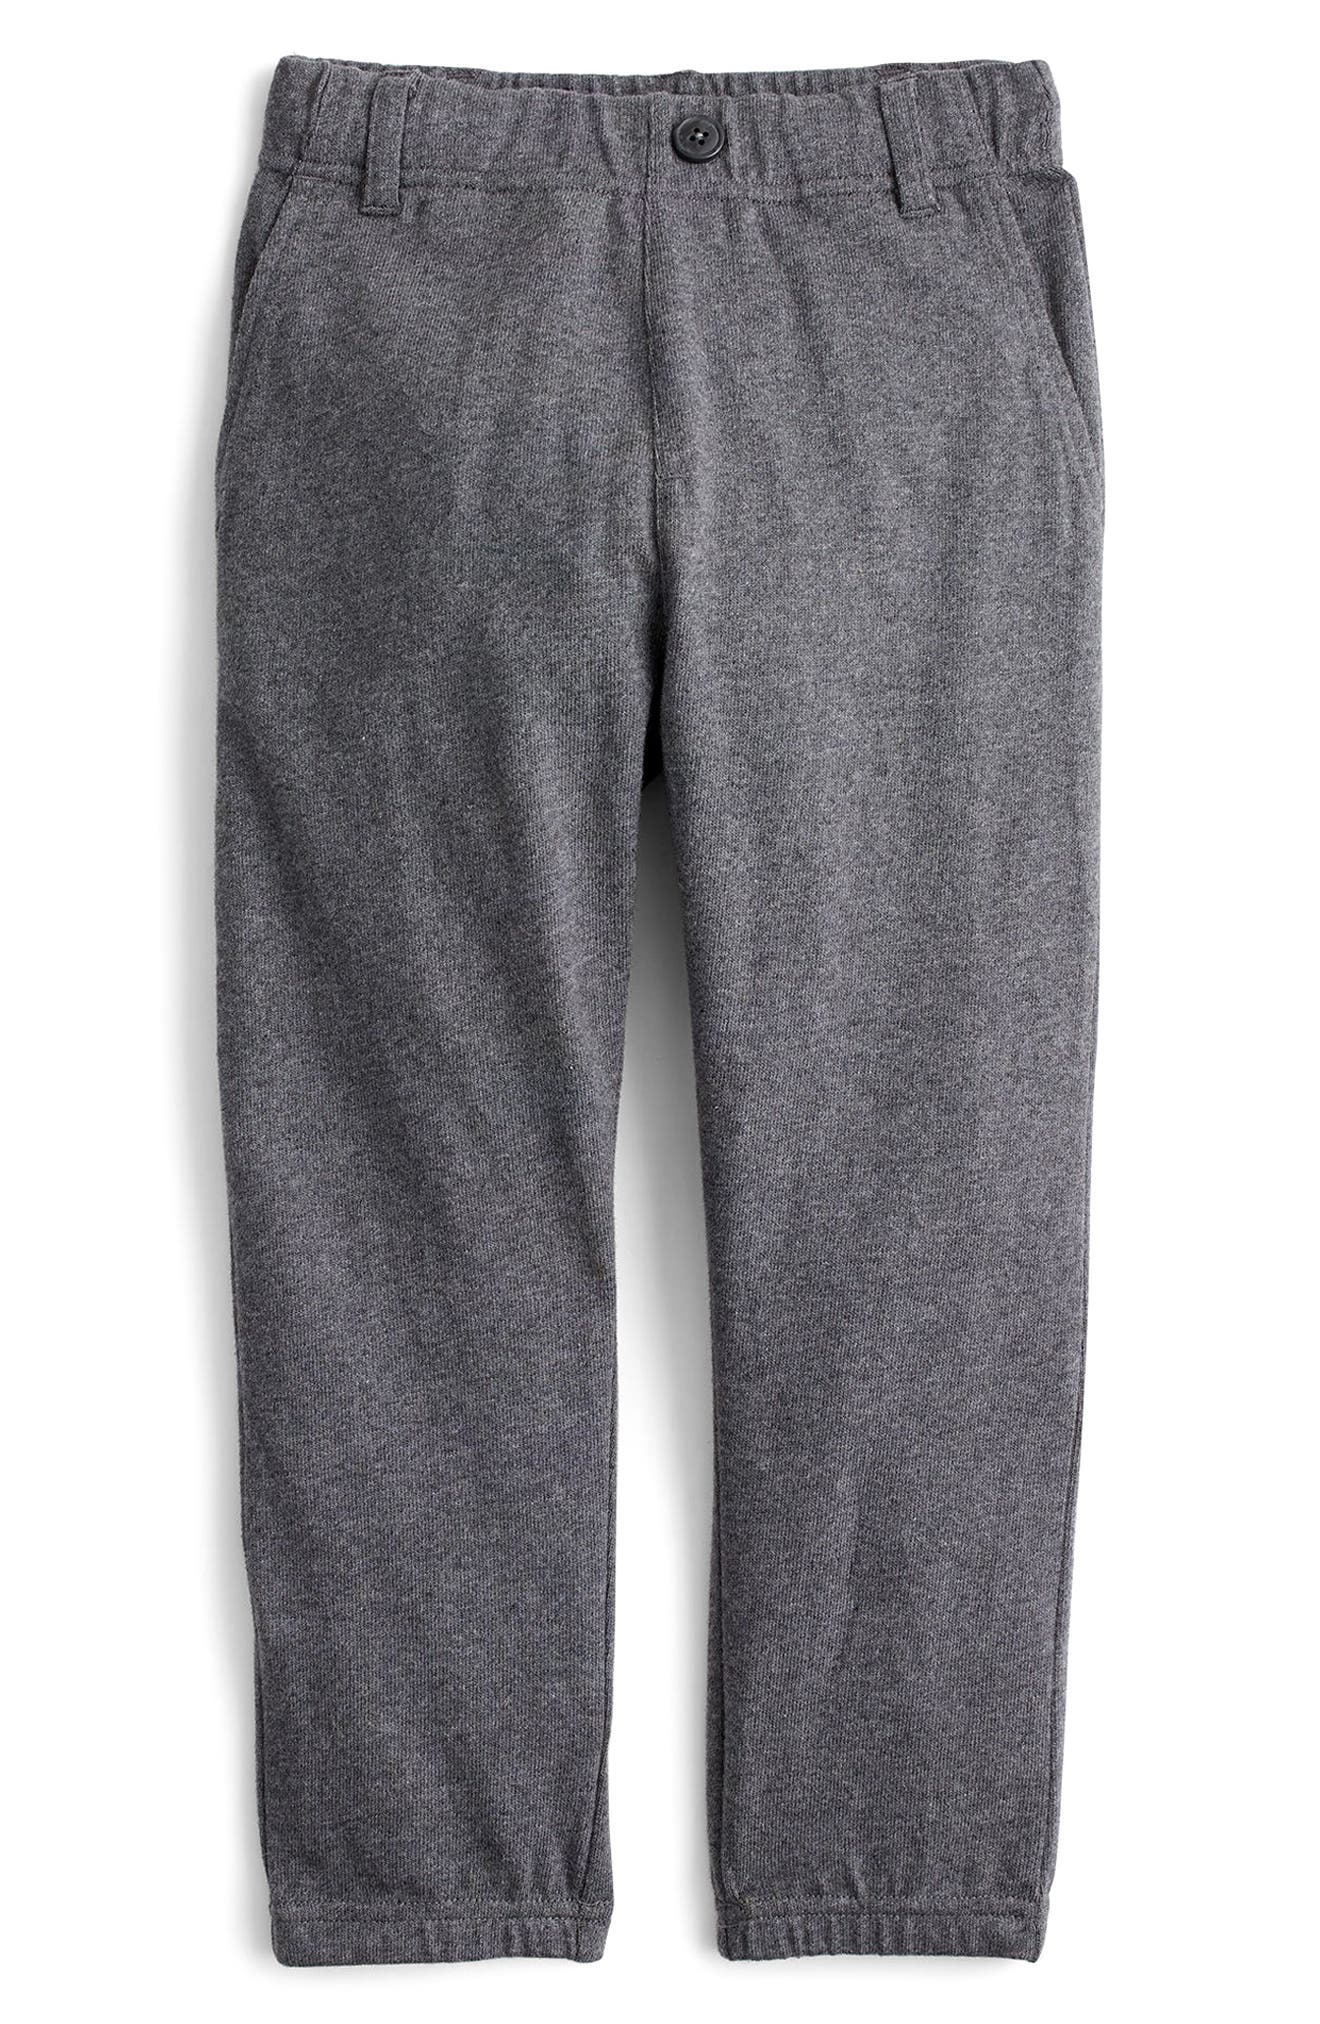 Trouser Sweatpants,                             Main thumbnail 1, color,                             020